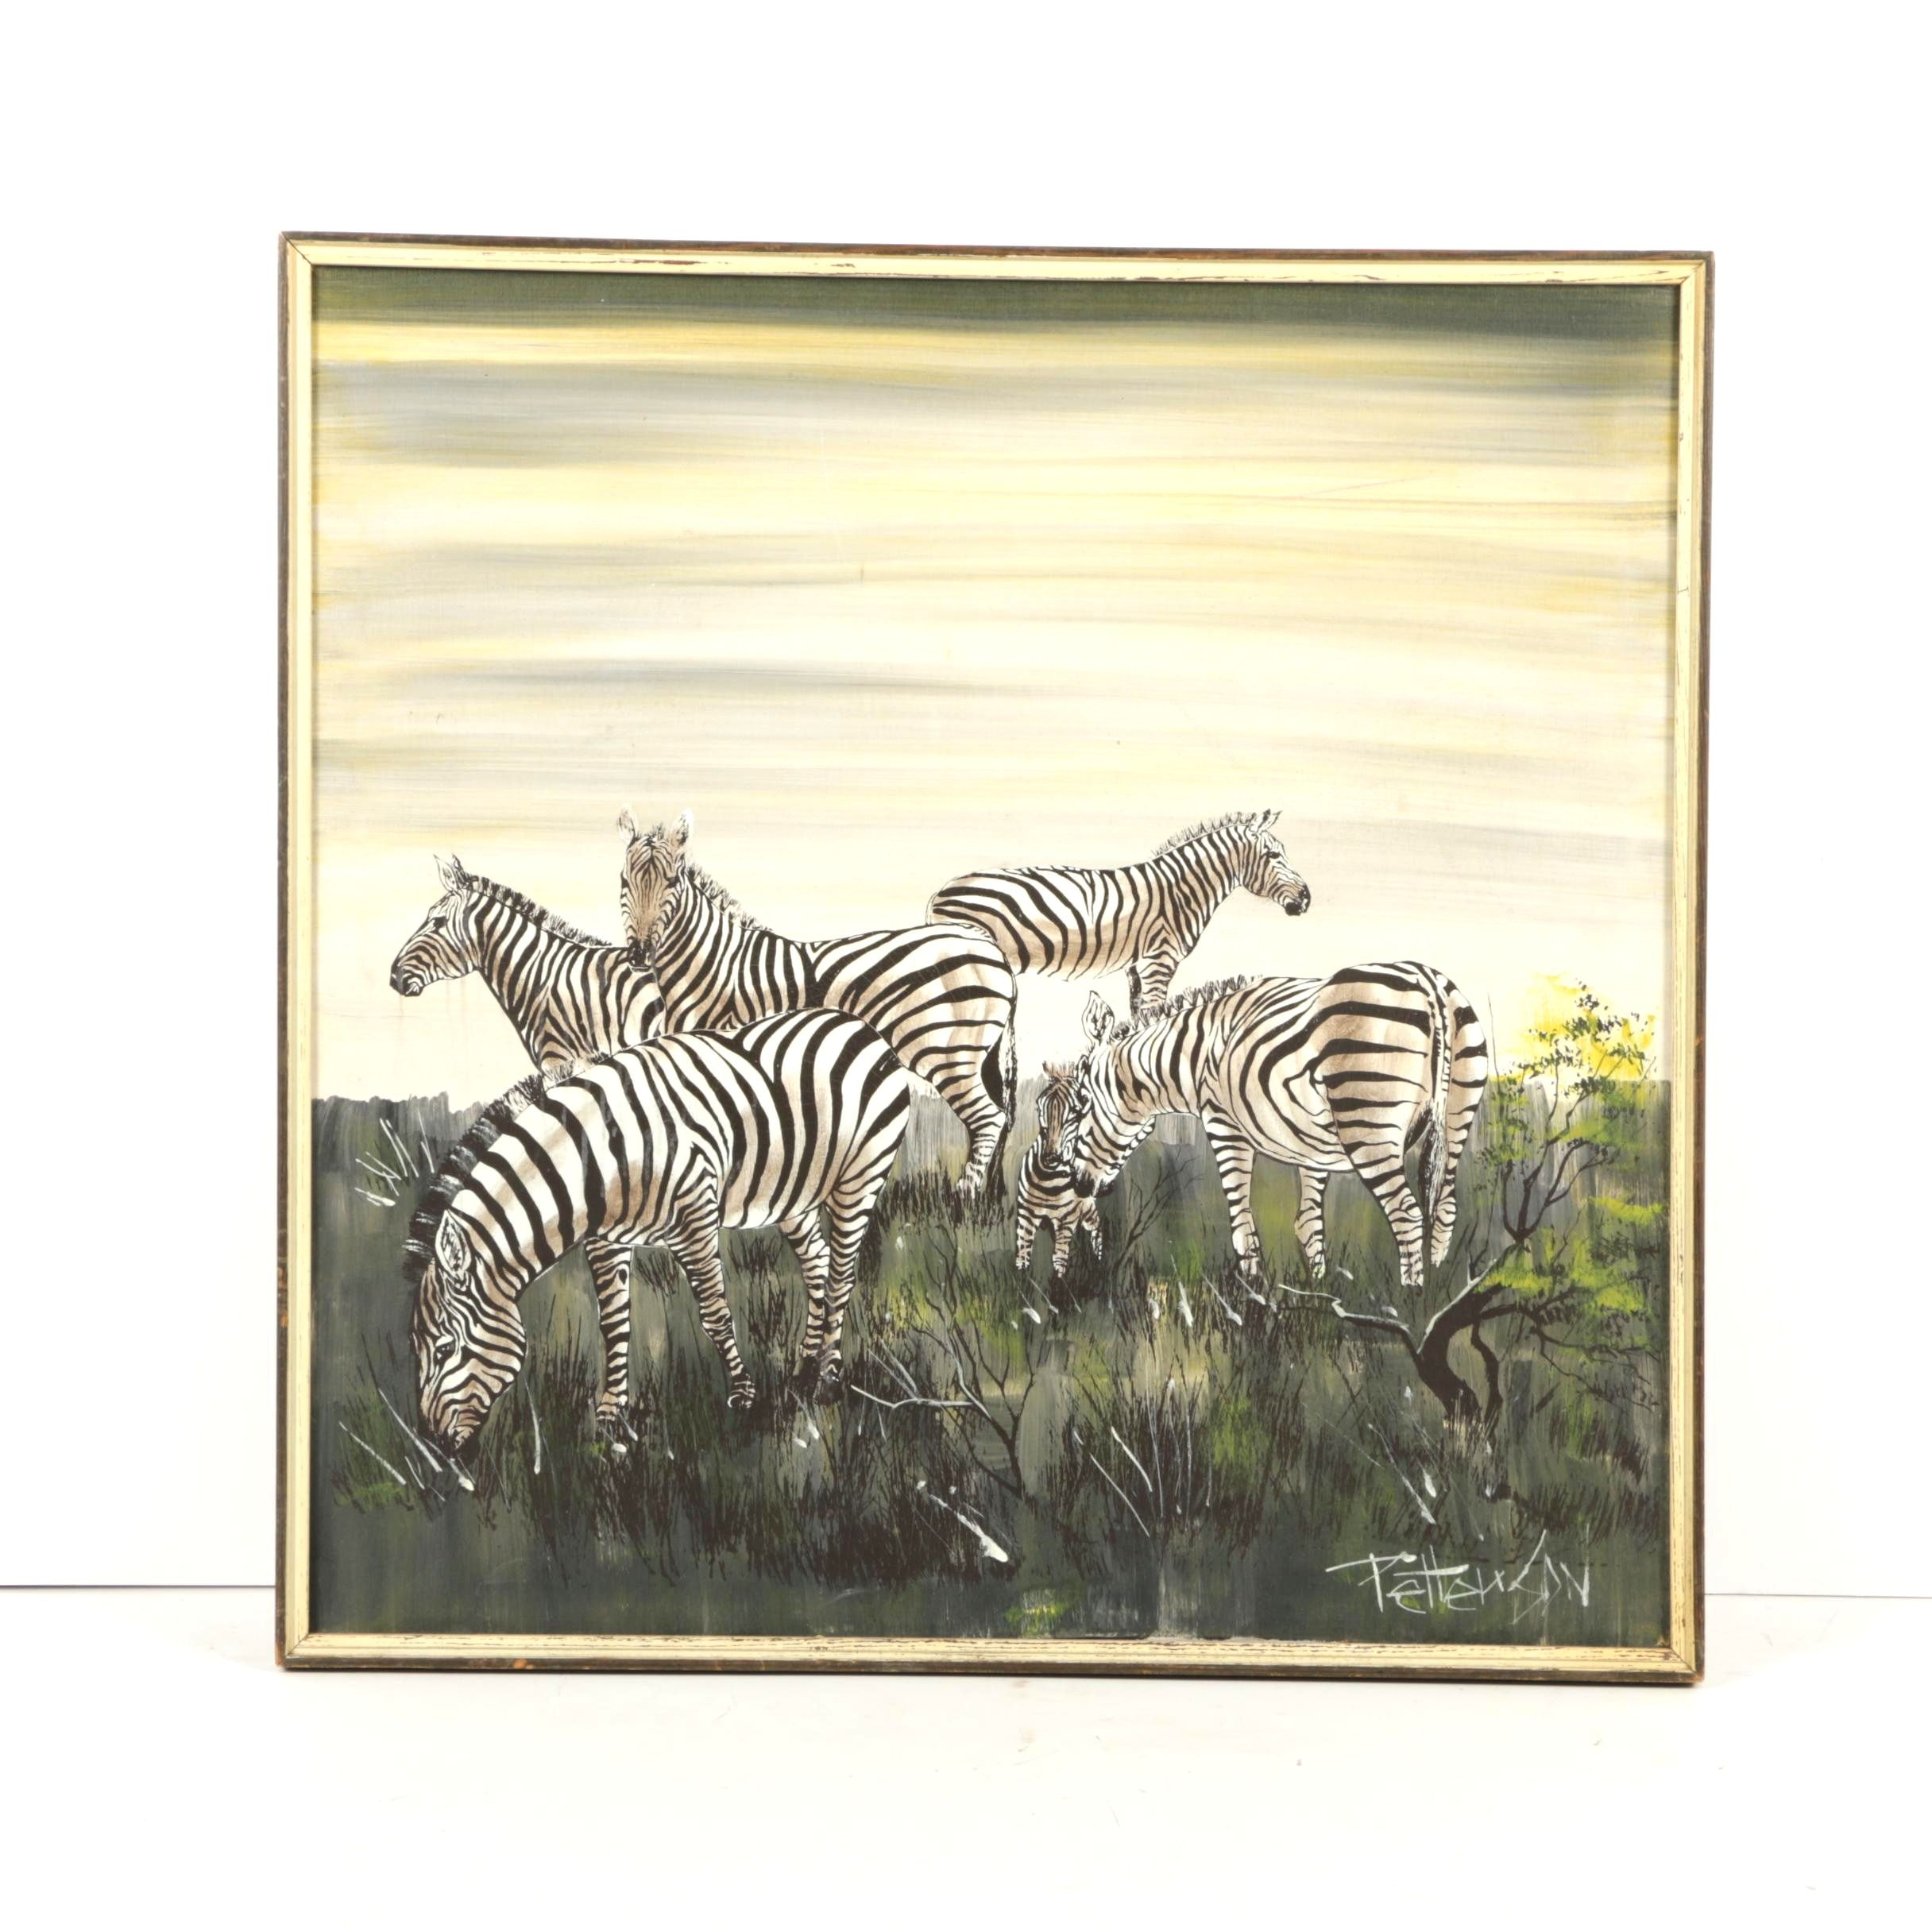 Petterson Serigraph and Acrylic of Grazing Zebras